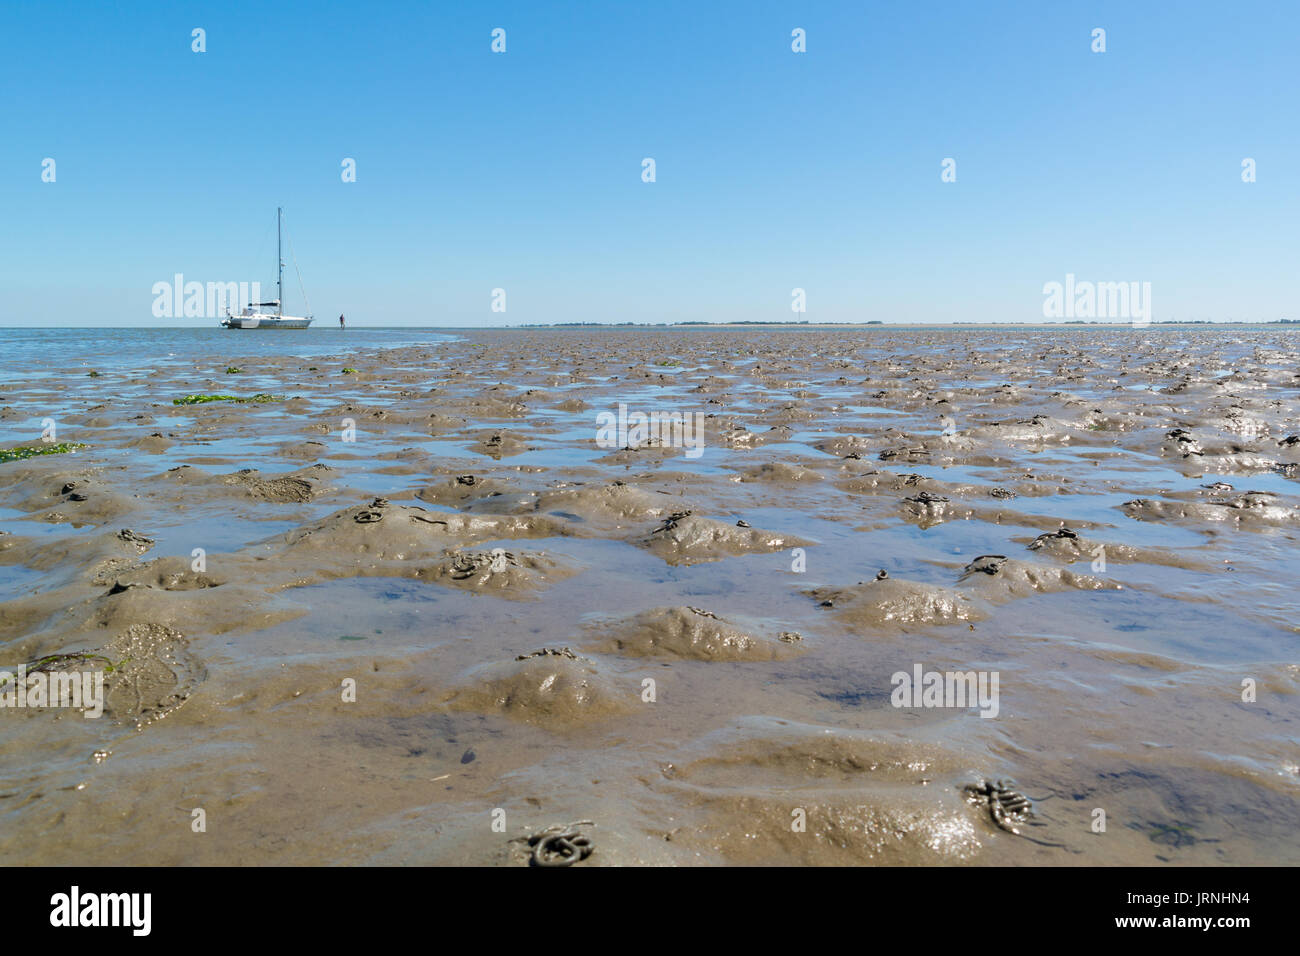 Panorama of mud flat with casts of lugworm and dried out sailboat at low tide on Waddensea, Netherlands - Stock Image